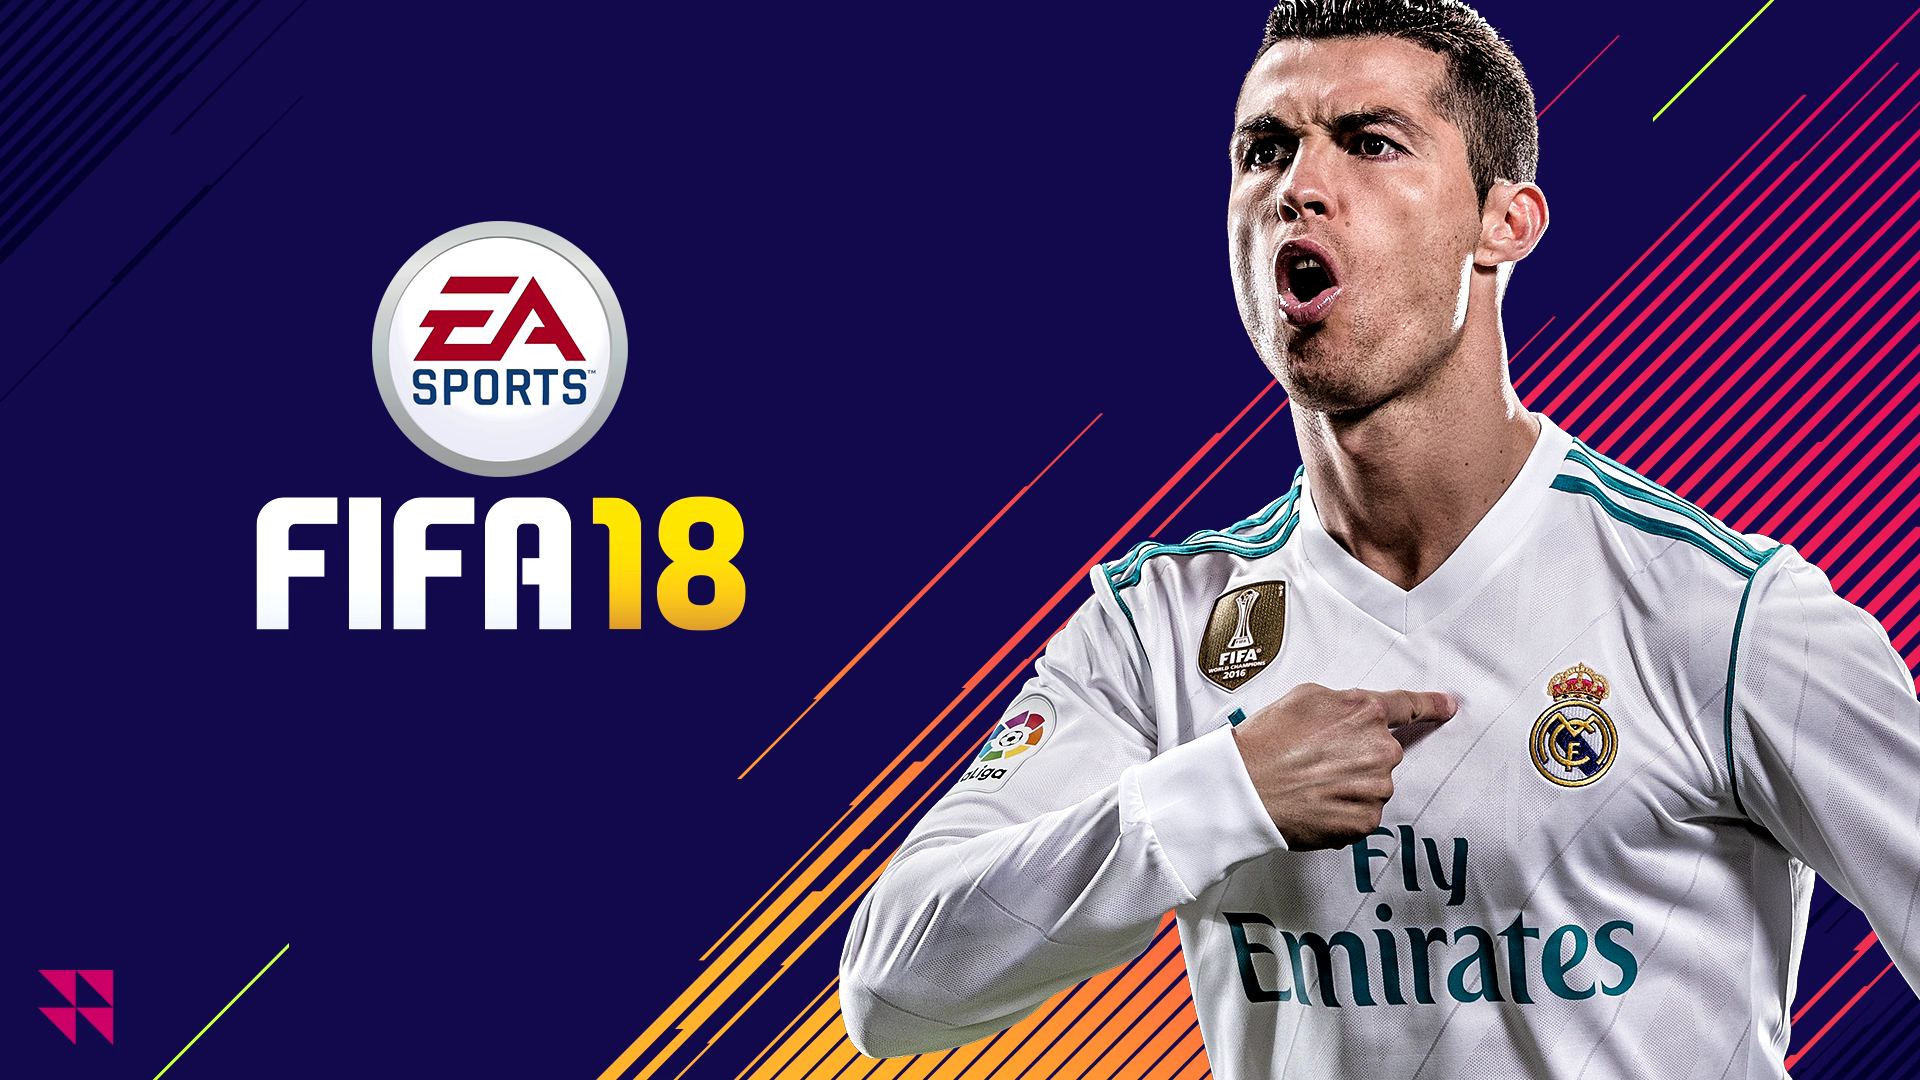 FIFA 18 review: Improved core features add more drama on and off the pitch | Soccer | Sporting News